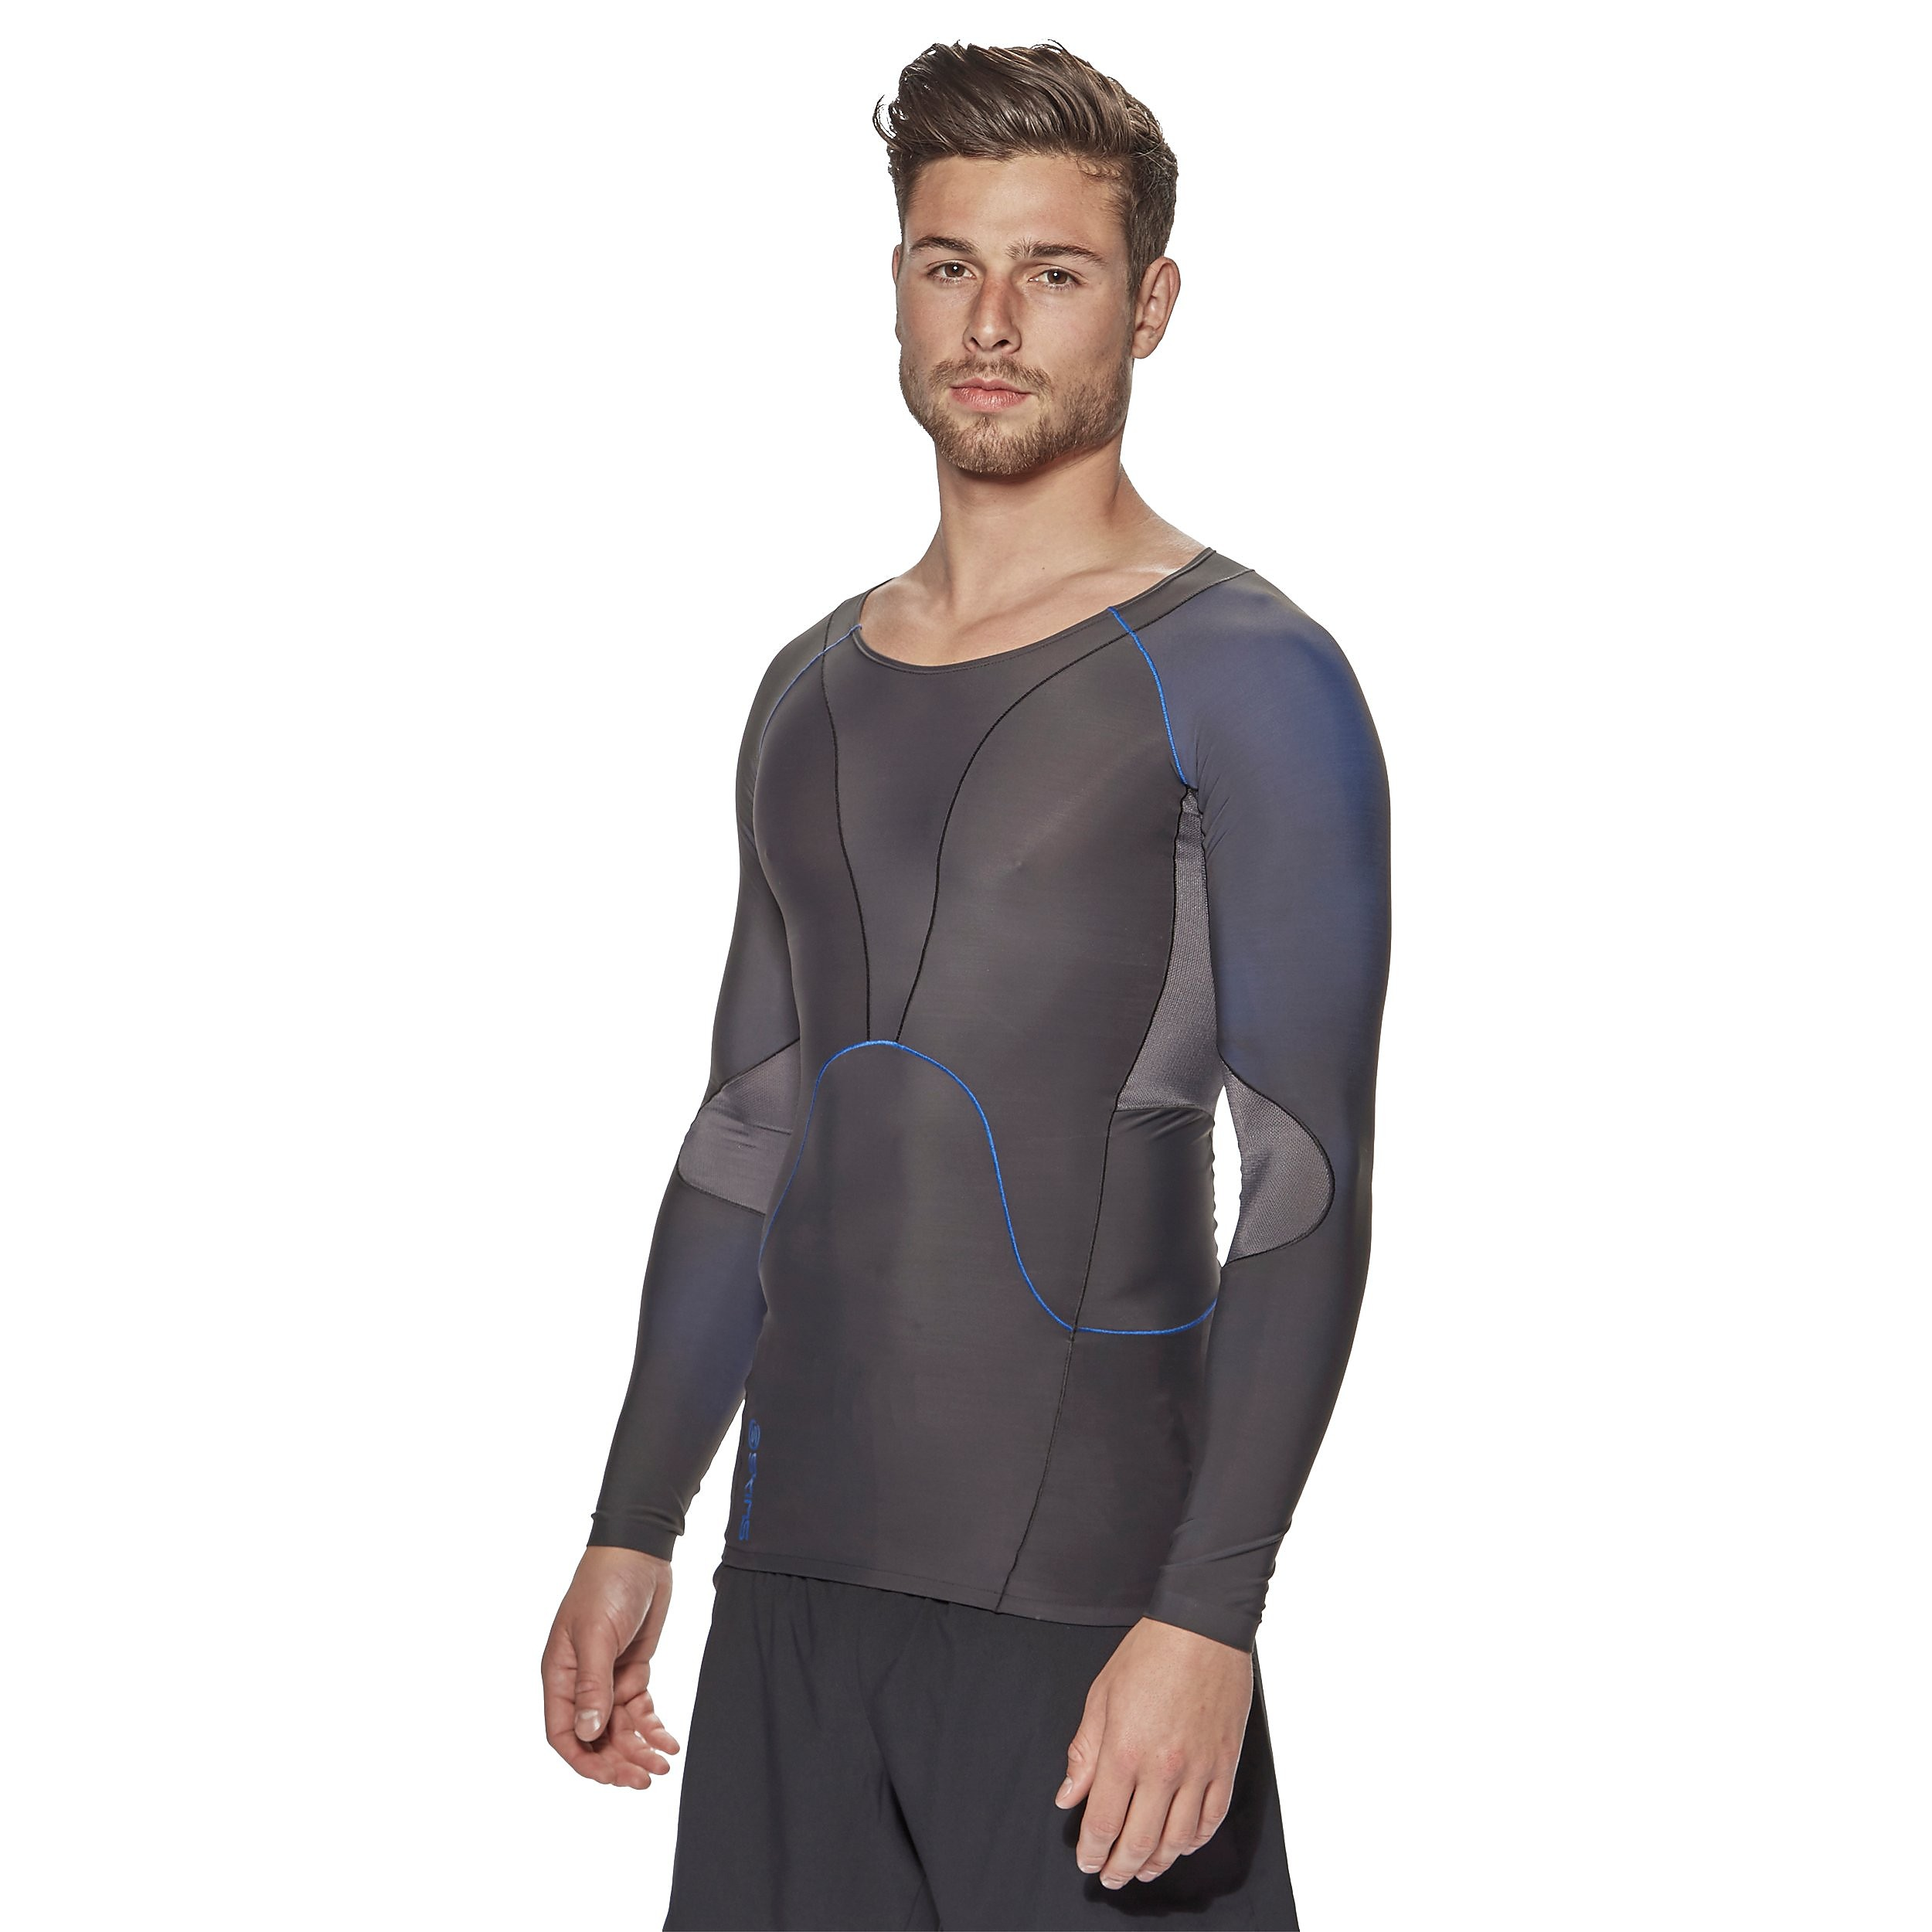 Skins RY400 Long Sleeve Men's Compression Top For Recovery